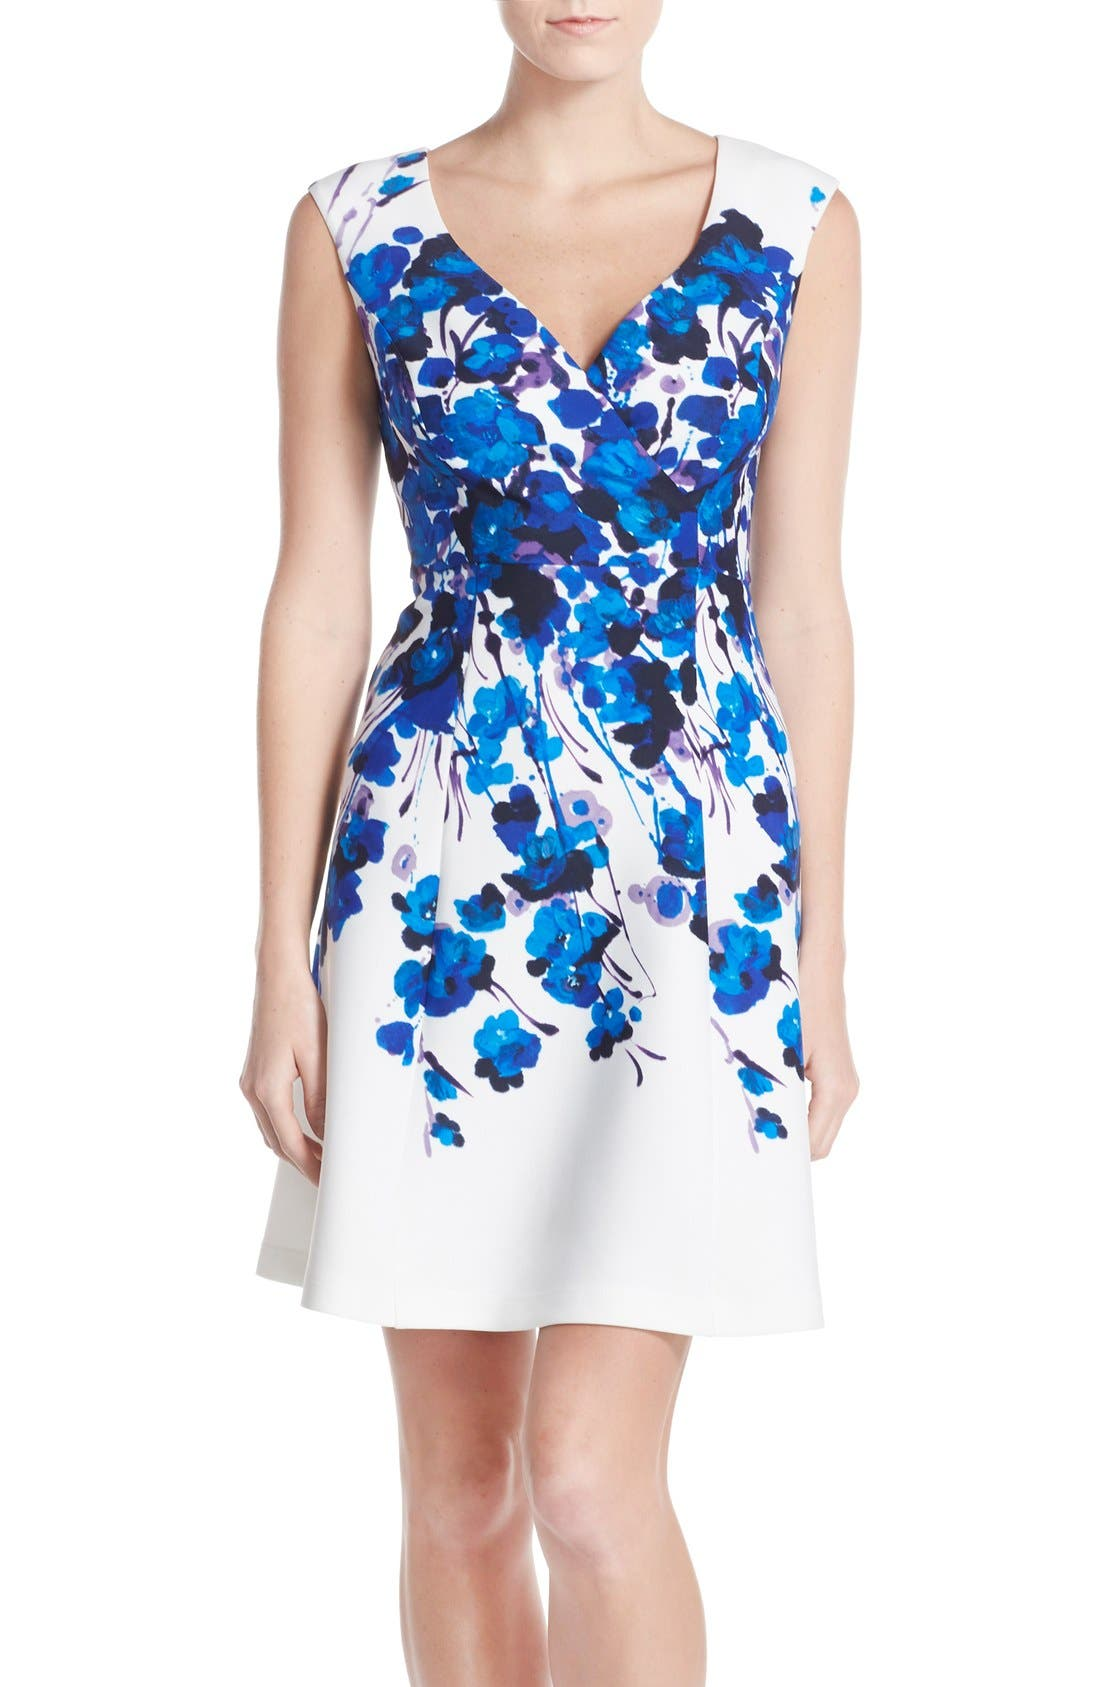 Alternate Image 1 Selected - Adrianna Papell Placed Print Stretch Fit & Flare Dress